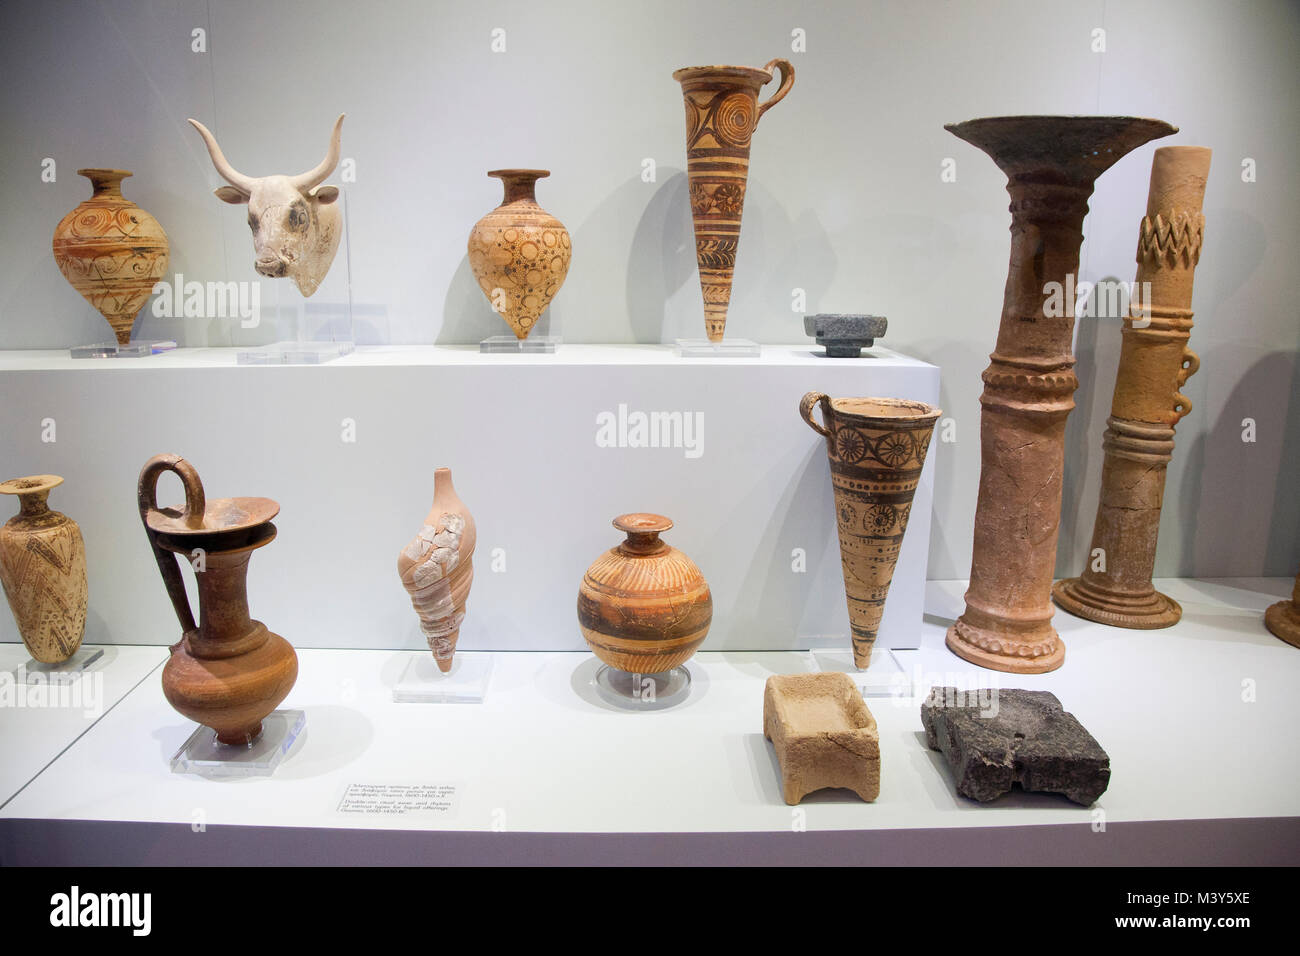 Double rim ritual ewer and rhytons found in Gournia dated 1600-1450 BC, Archaeological Museum of Heraklion, Iraklio, Stock Photo